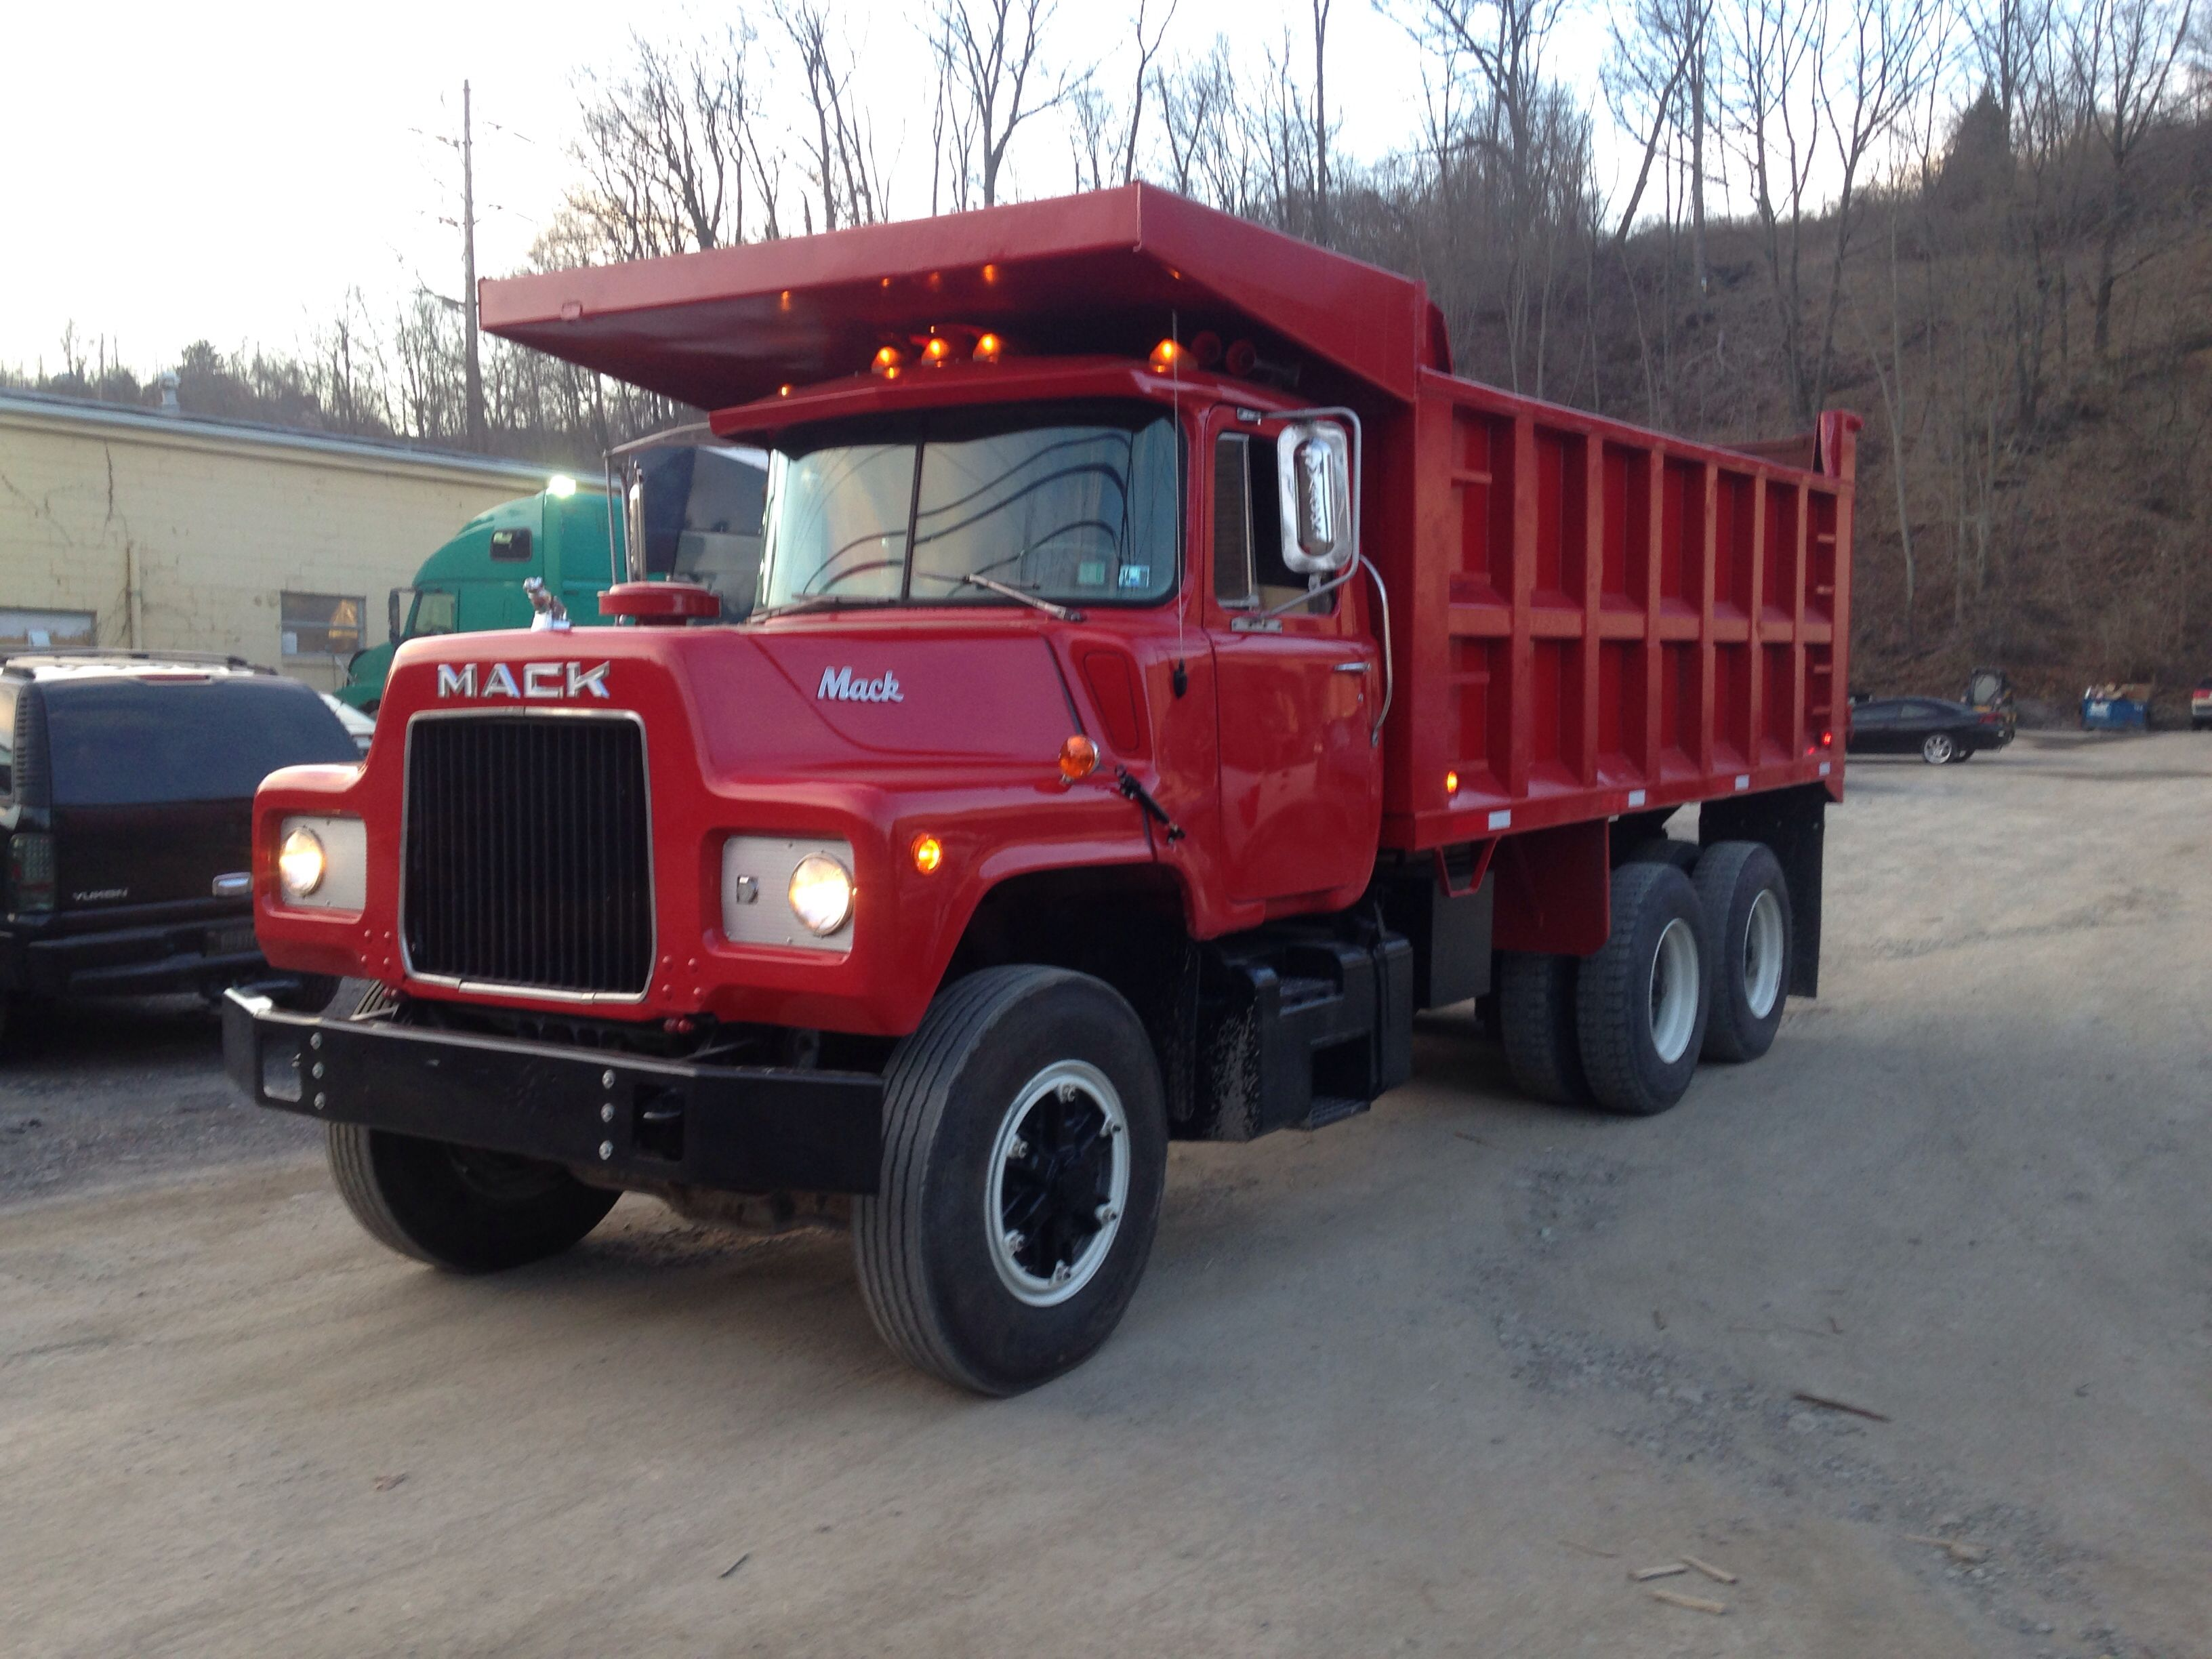 hight resolution of 1978 mack dm685 restoration mack trucks dump trucks big trucks vintage trucks